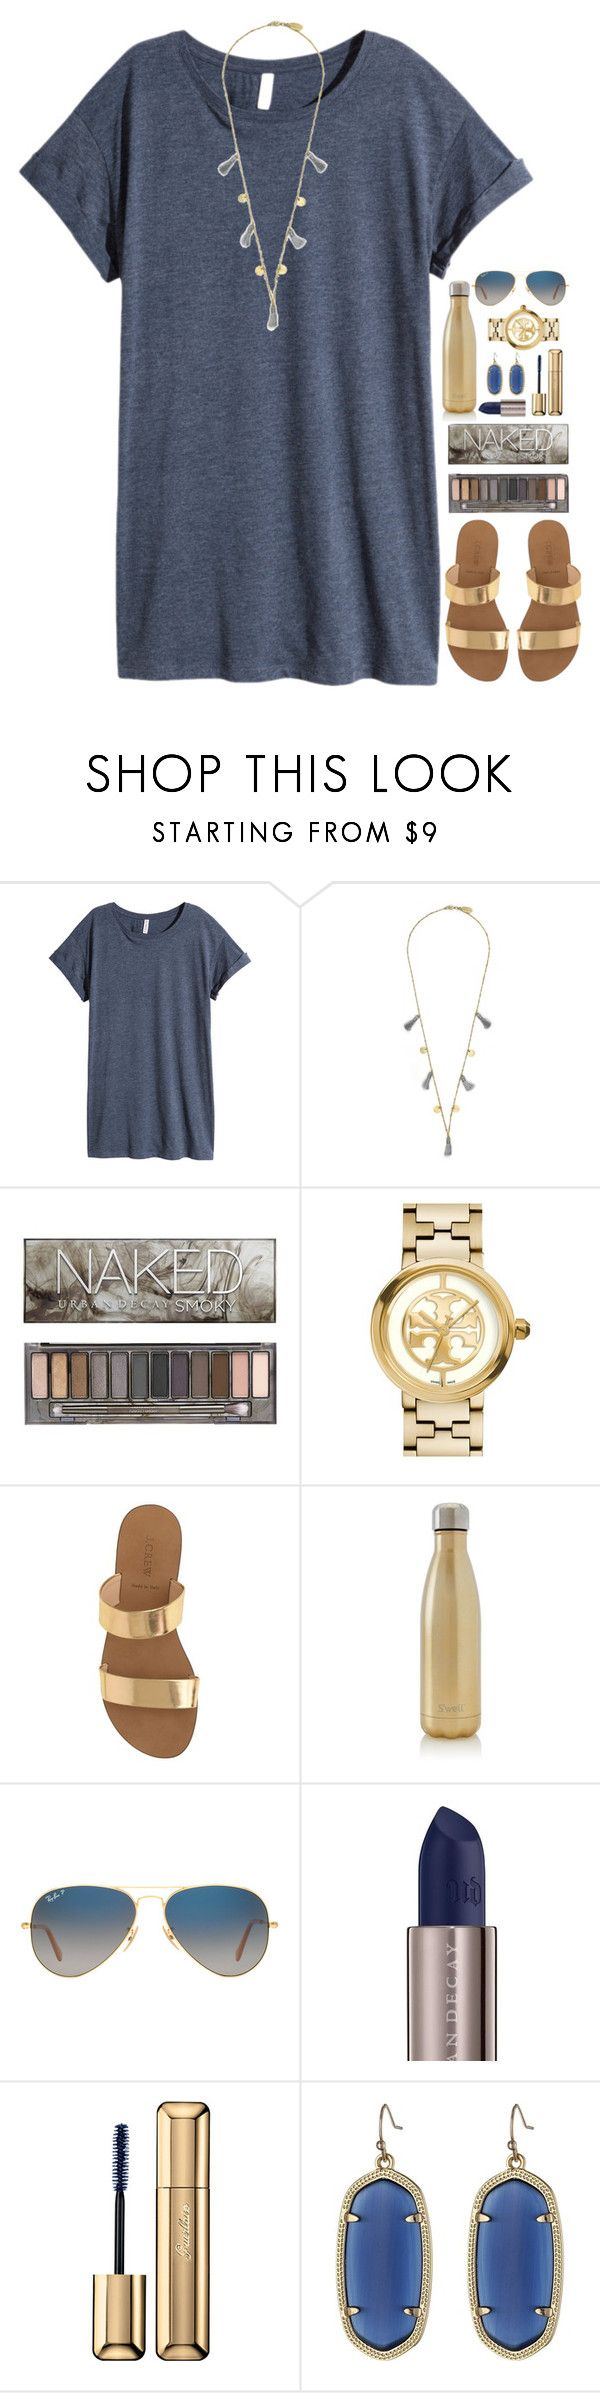 göldën by julesamber ❤ liked on Polyvore featuring HM, Feather  Stone, Urban Decay, Tory Burch, J.Crew, Swell, Ray-Ban, Guerlain and Kendra Scott